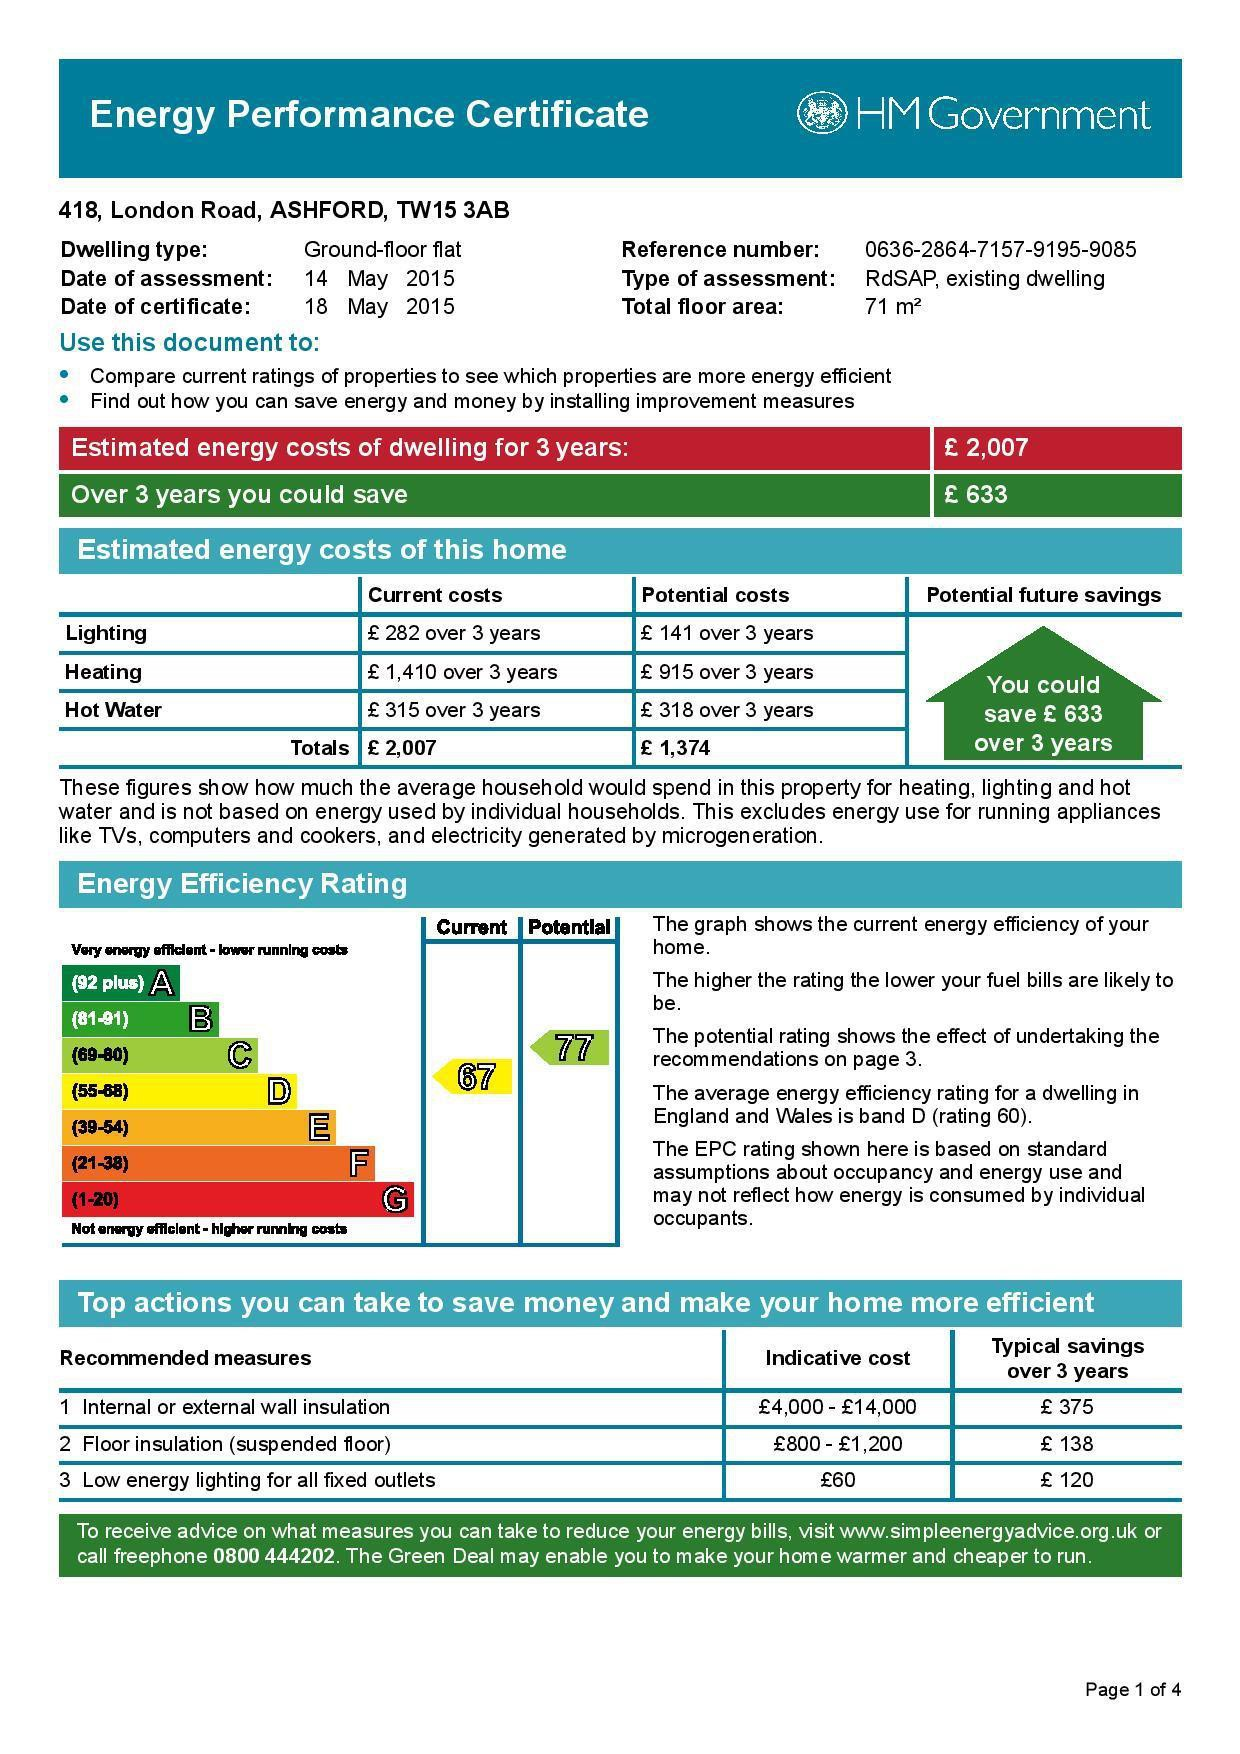 EPC Graph for 418 London Road, Ashford, Middlesex TW15 3AB